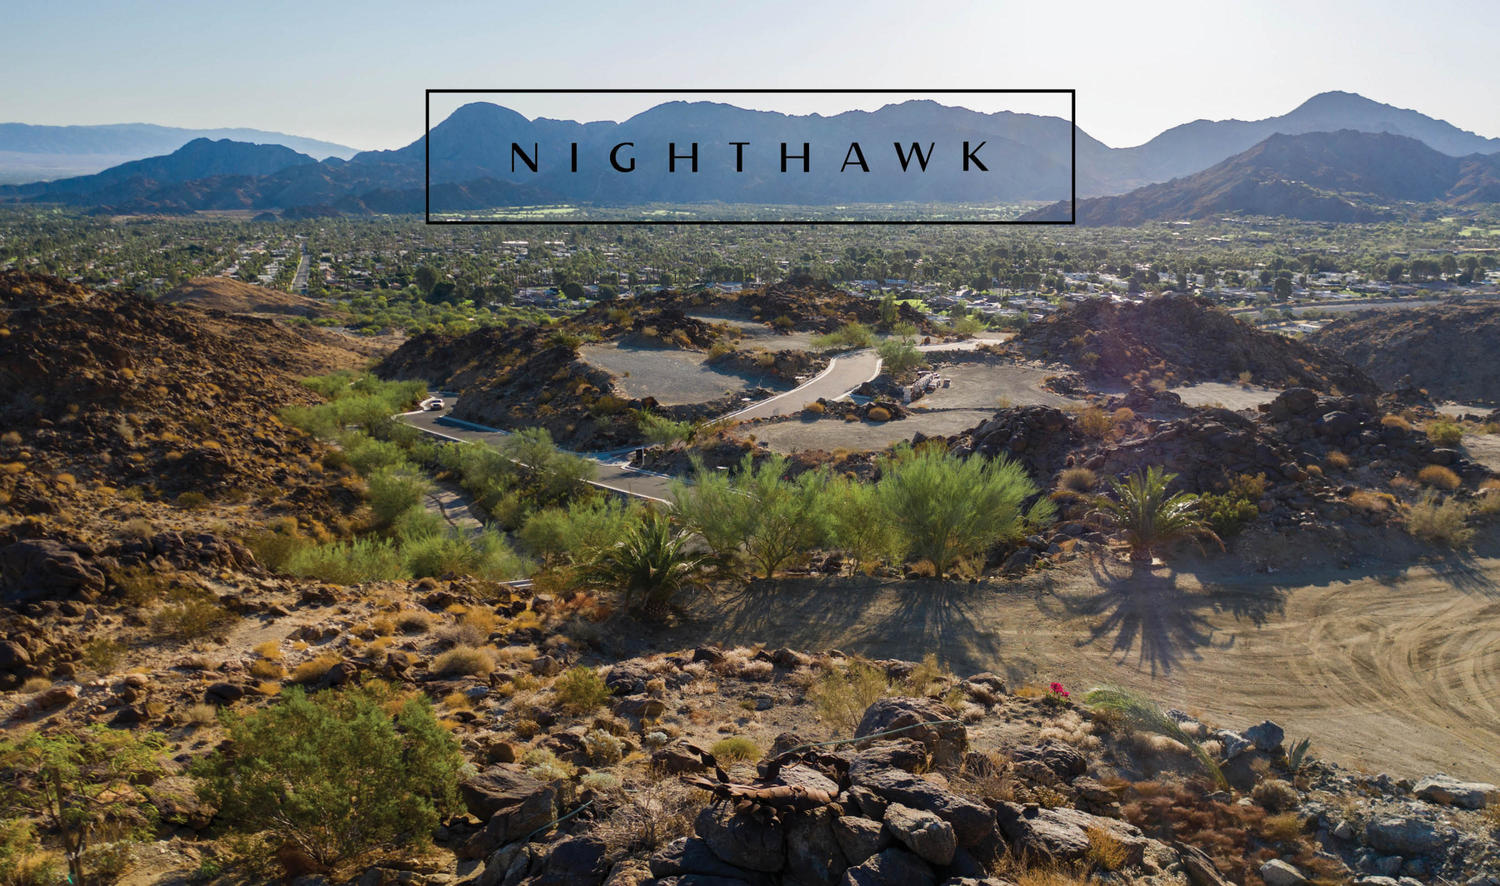 Lot 6 Nighthawk Estates, Lot 6 Estates Palm Desert, CA 92260